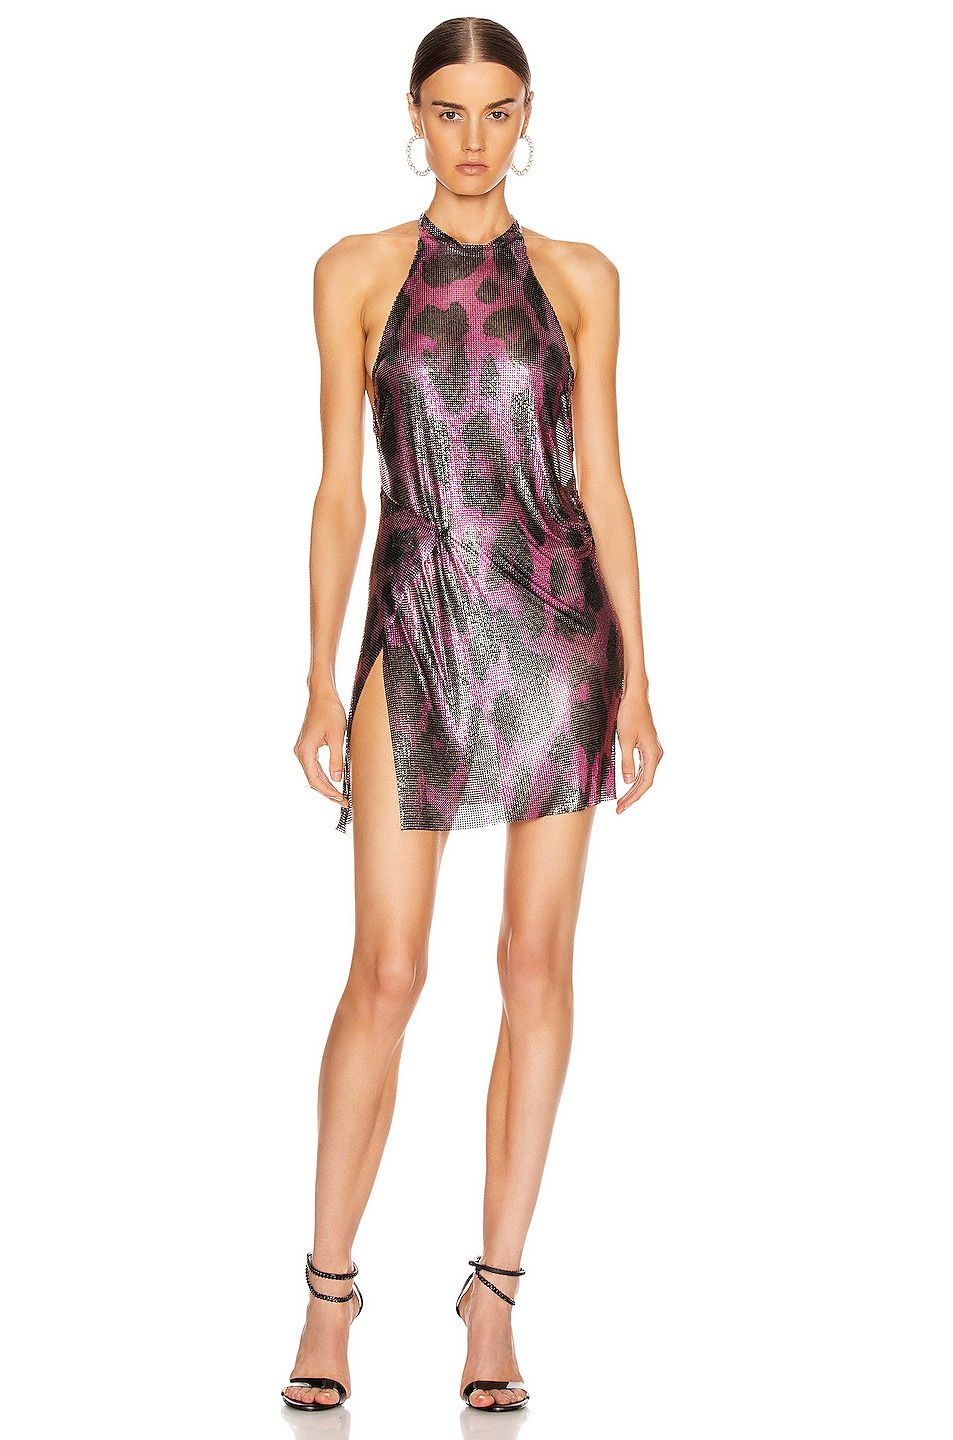 Image 1 of FANNIE SCHIAVONI for FWRD Alicia Halter Mini Dress in Pink Leopard